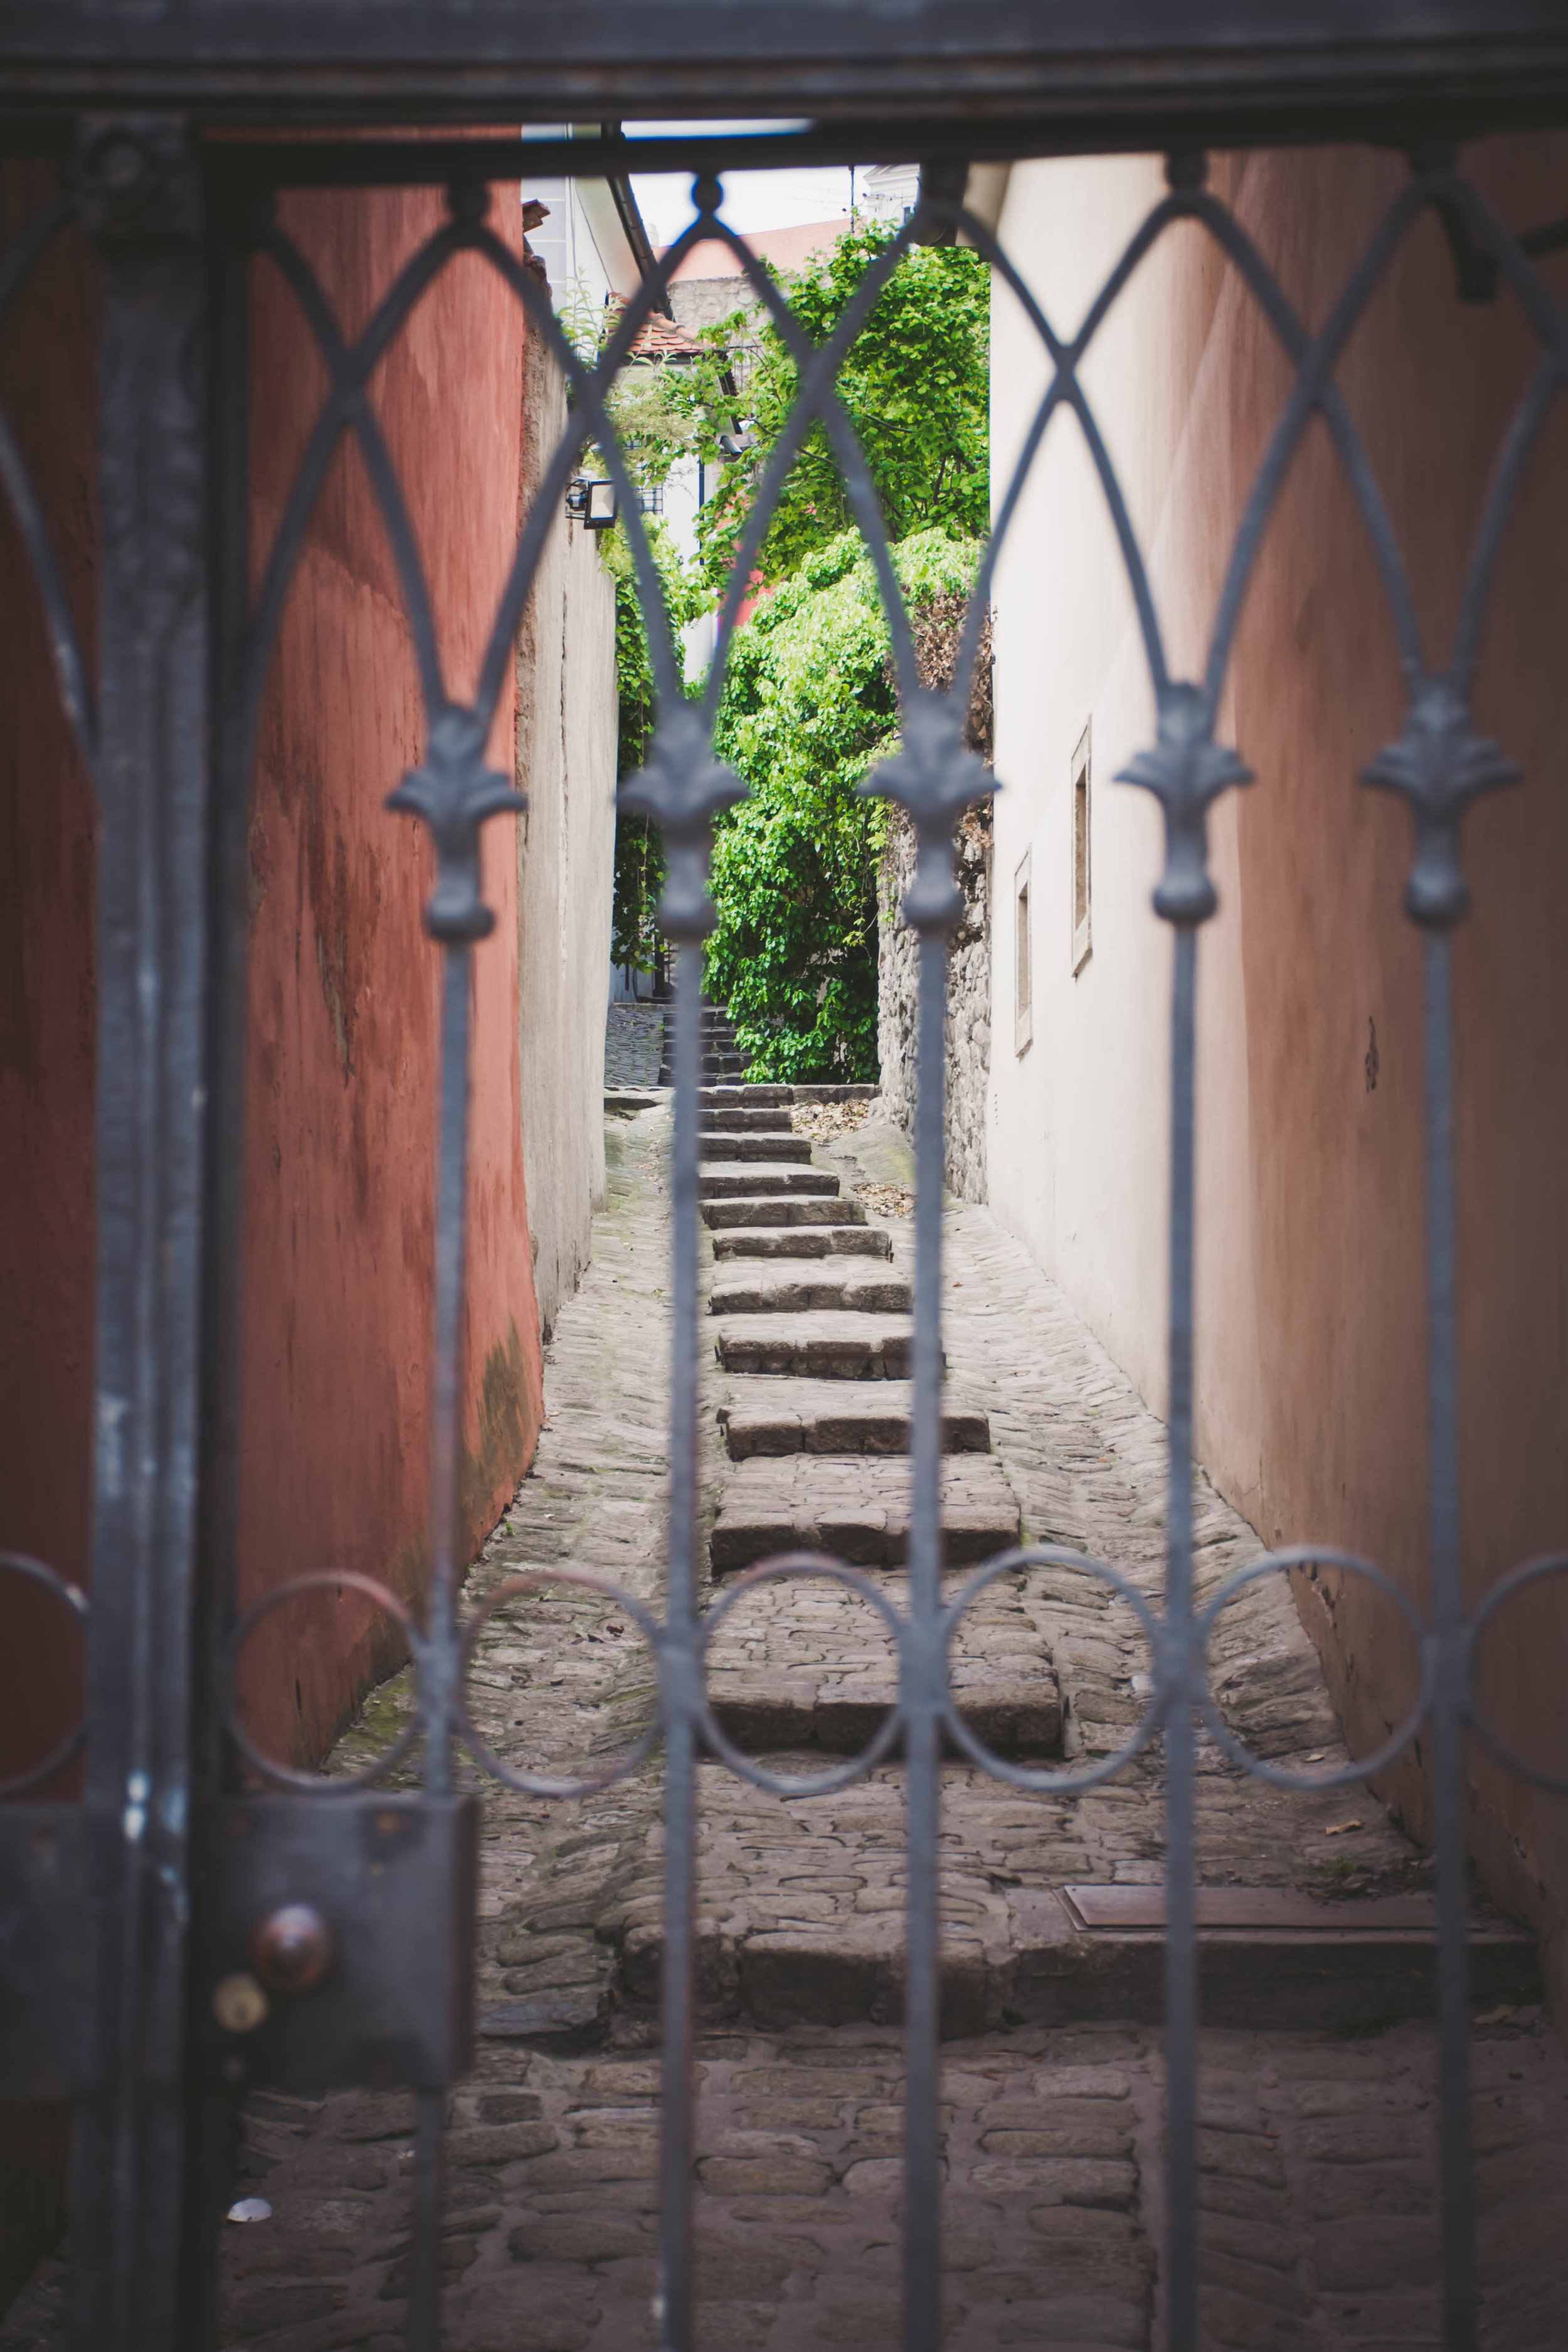 A neat alley way